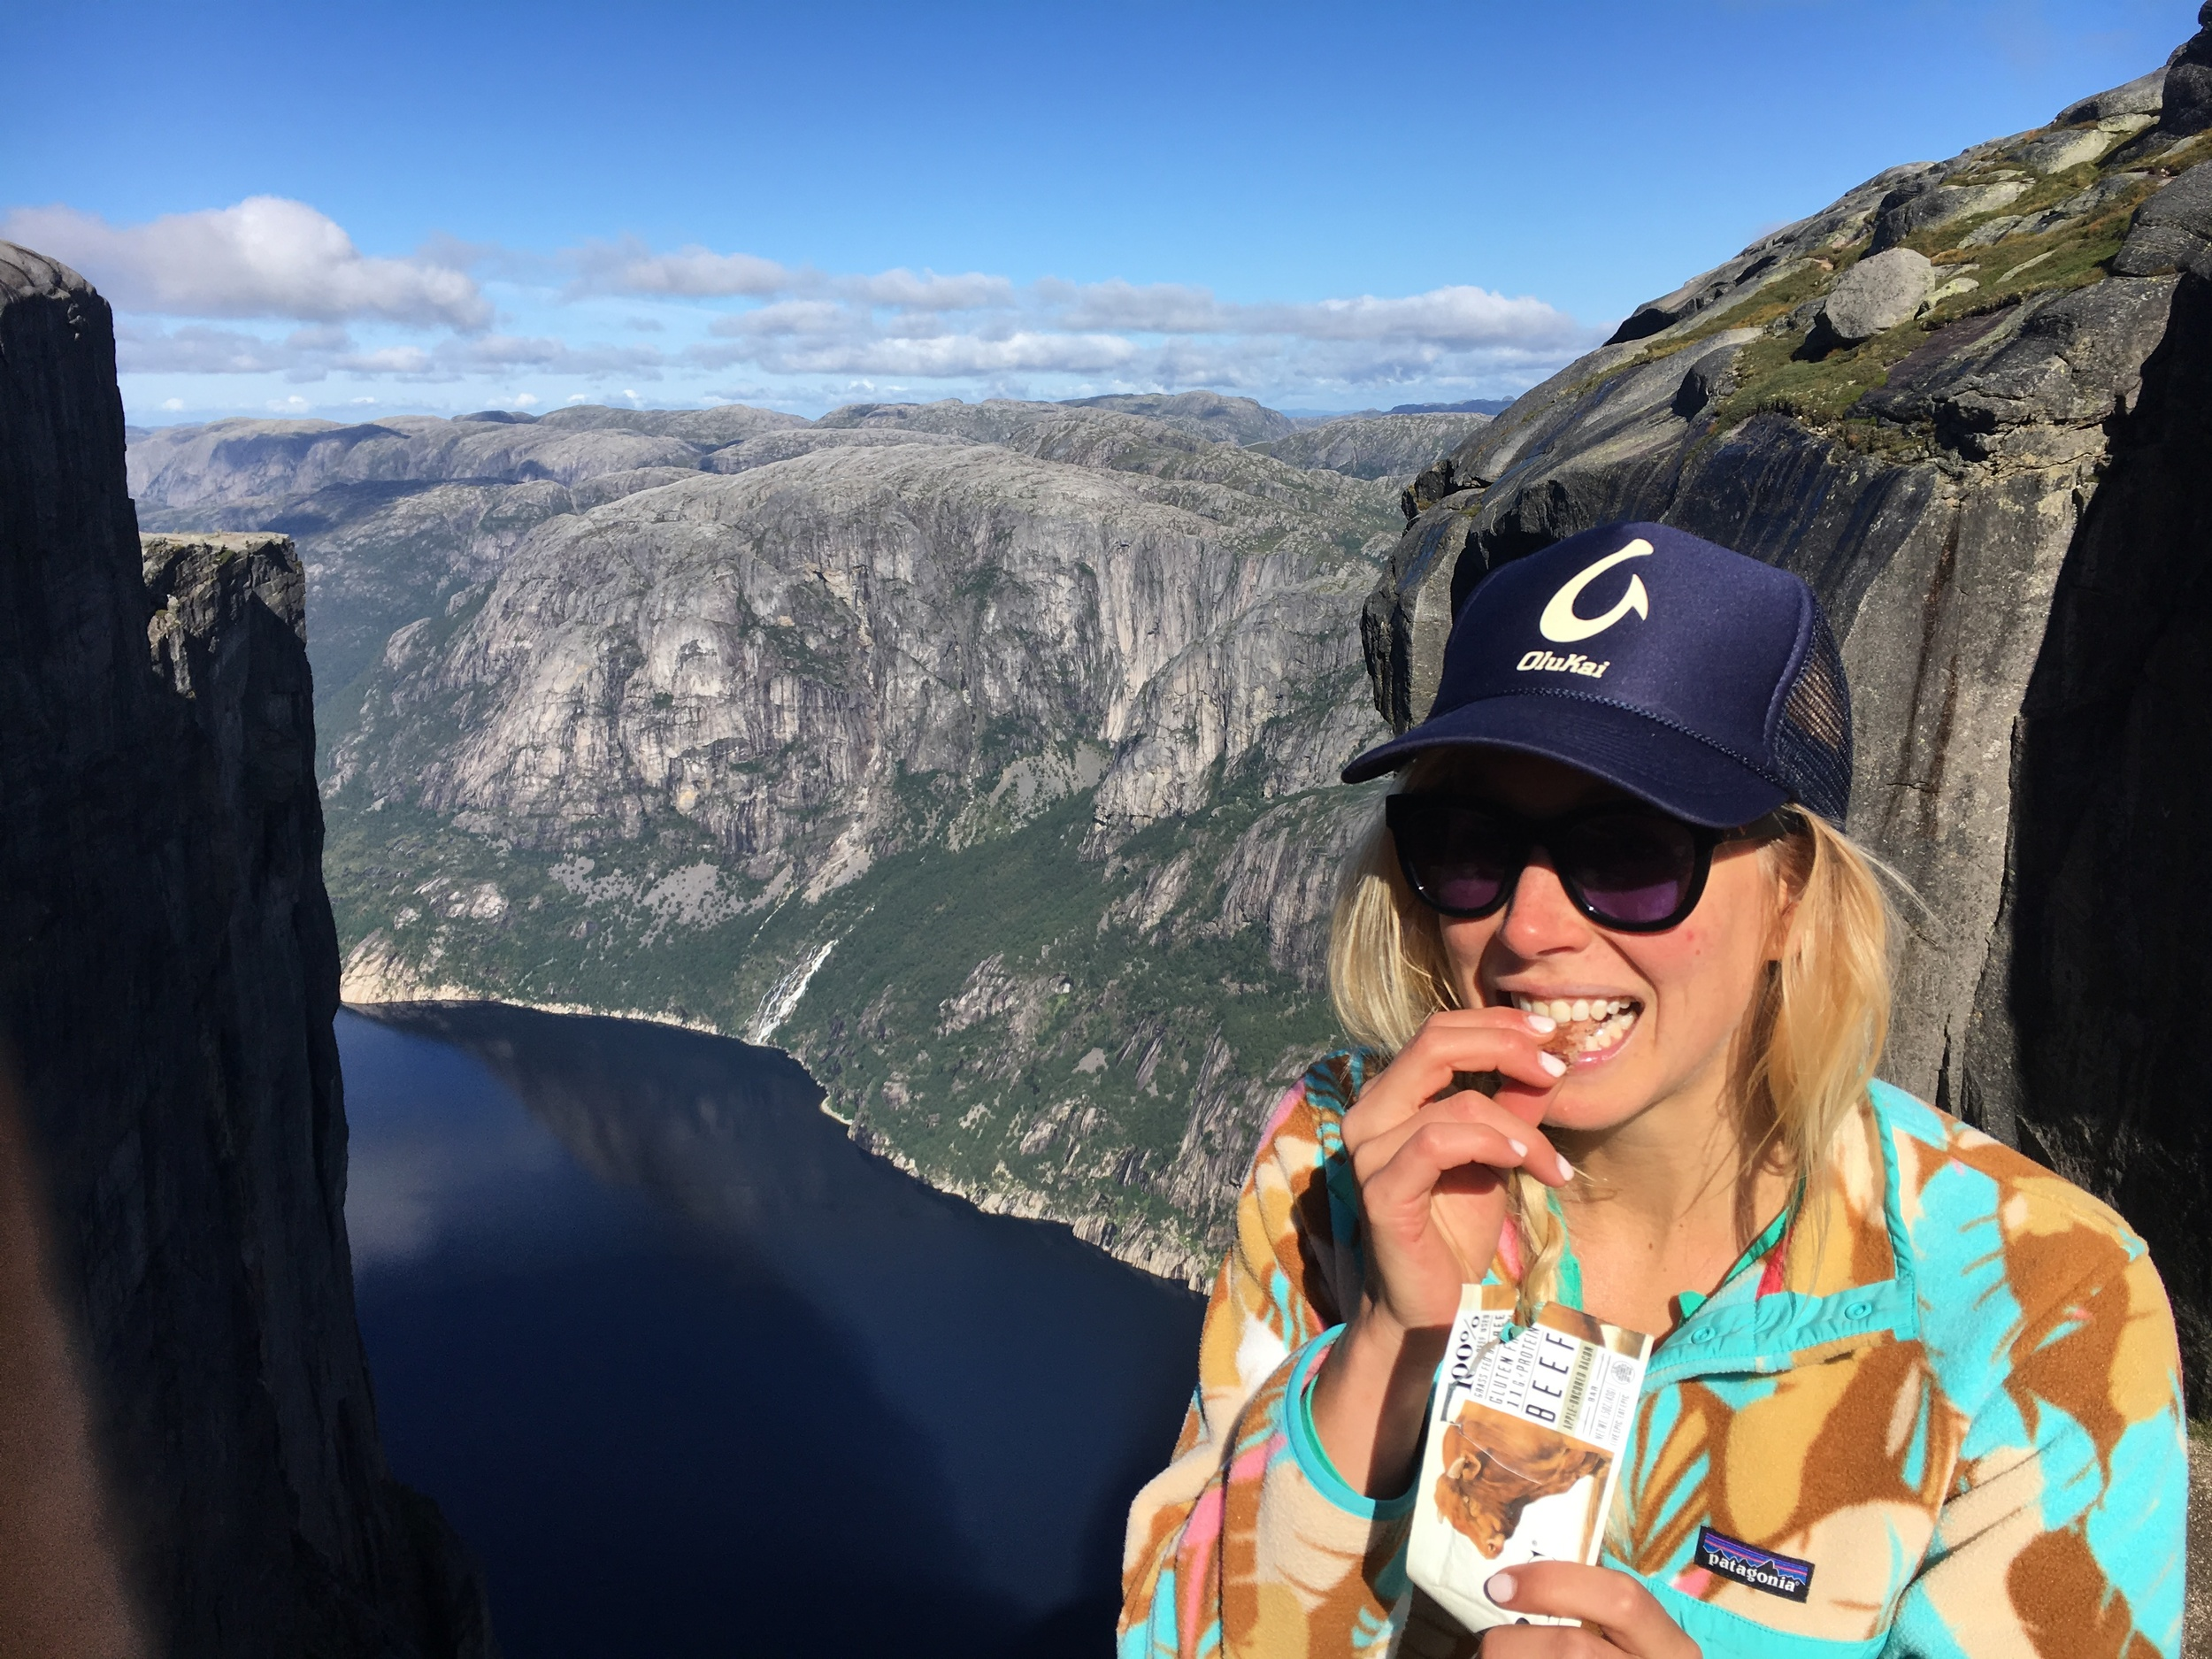 Epic snacking on my Fjord hikes in Norway!